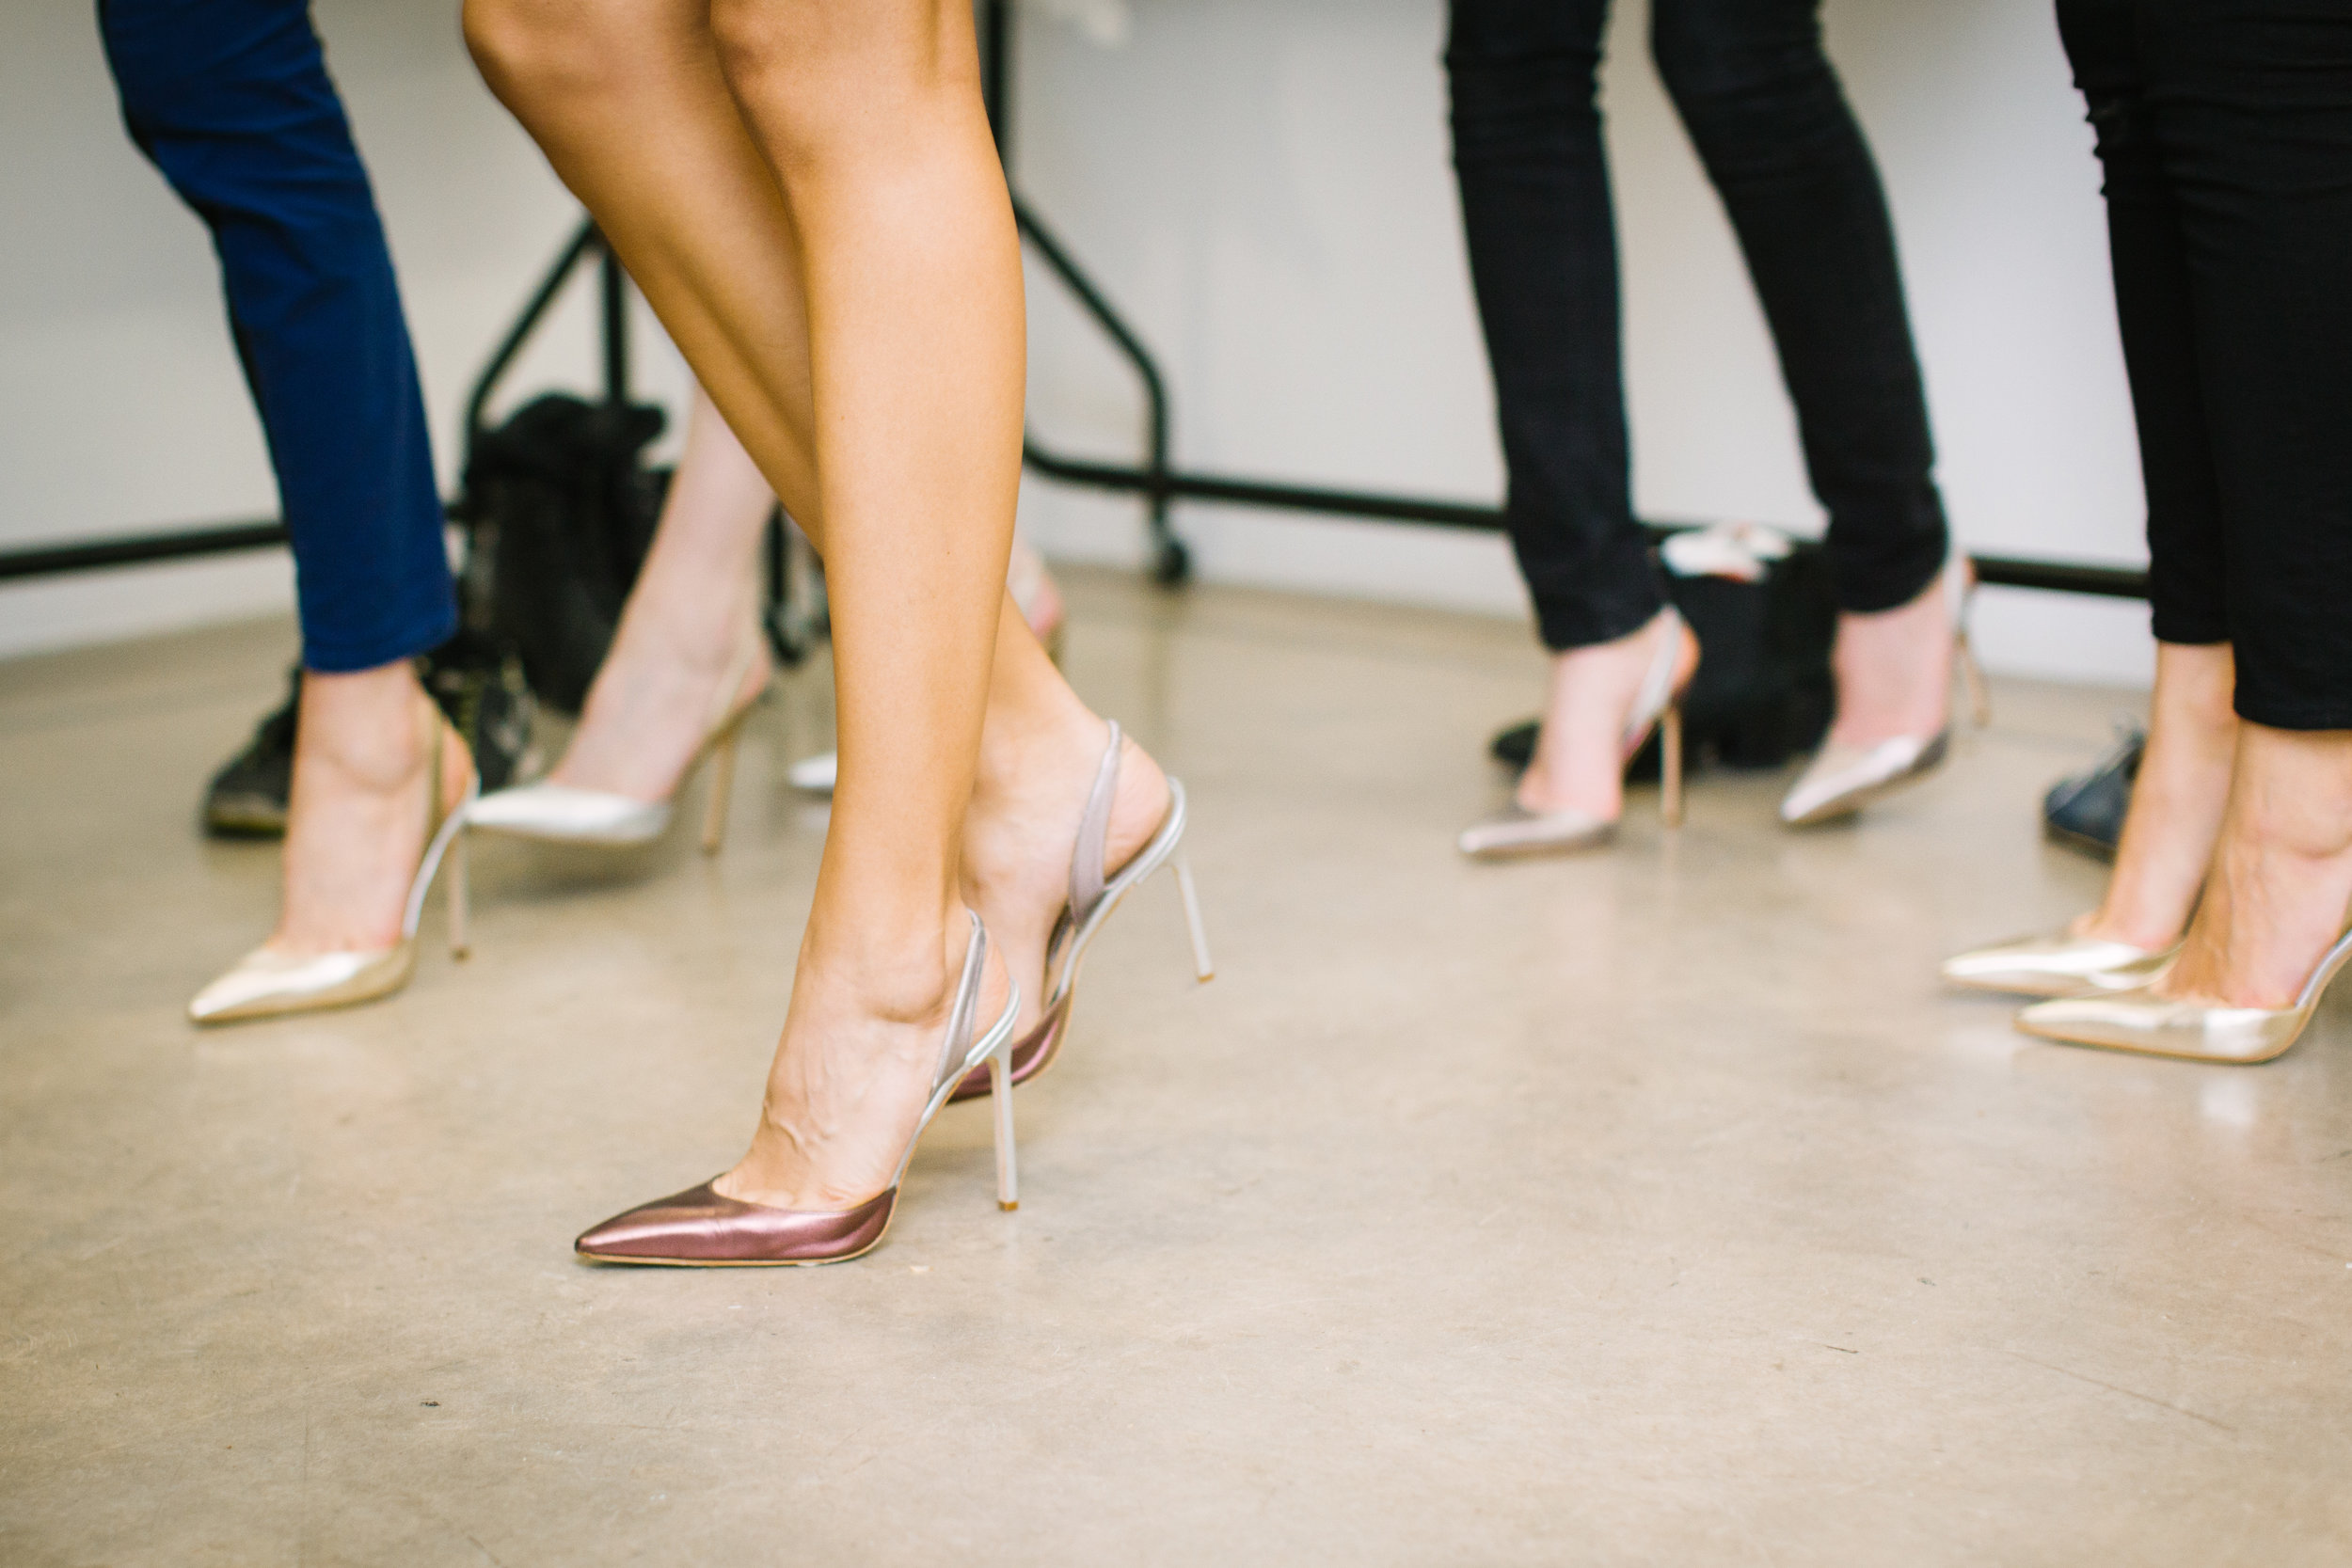 High heels are bad for your joints, knees, hips … -